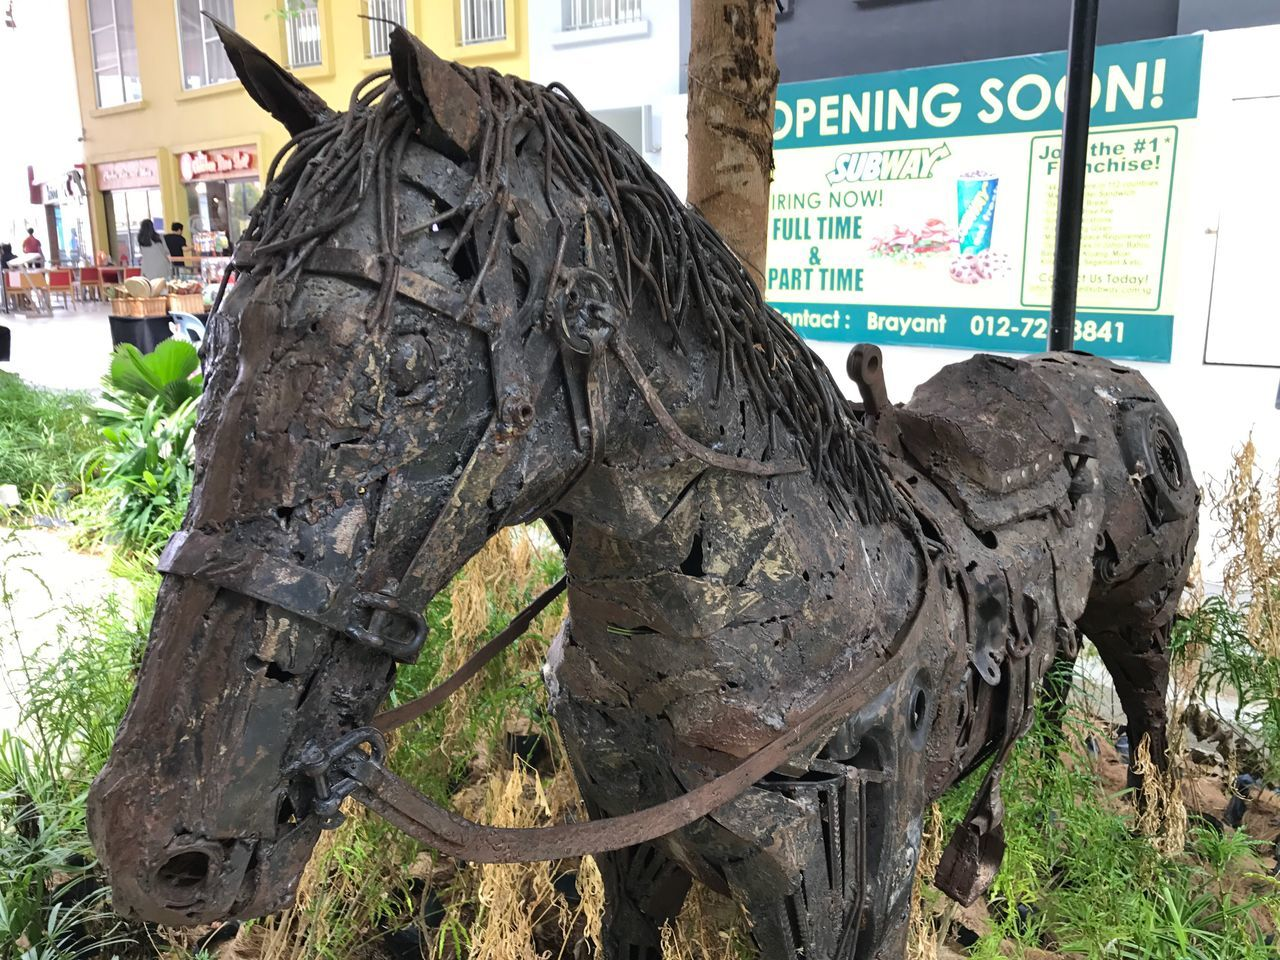 Close-up Text No People Communication Outdoors Day Building Exterior Architecture Animal Themes Horse Horse made of scraps Scraps Scrapsculpture Scraps Turn To Money Art ArtWork